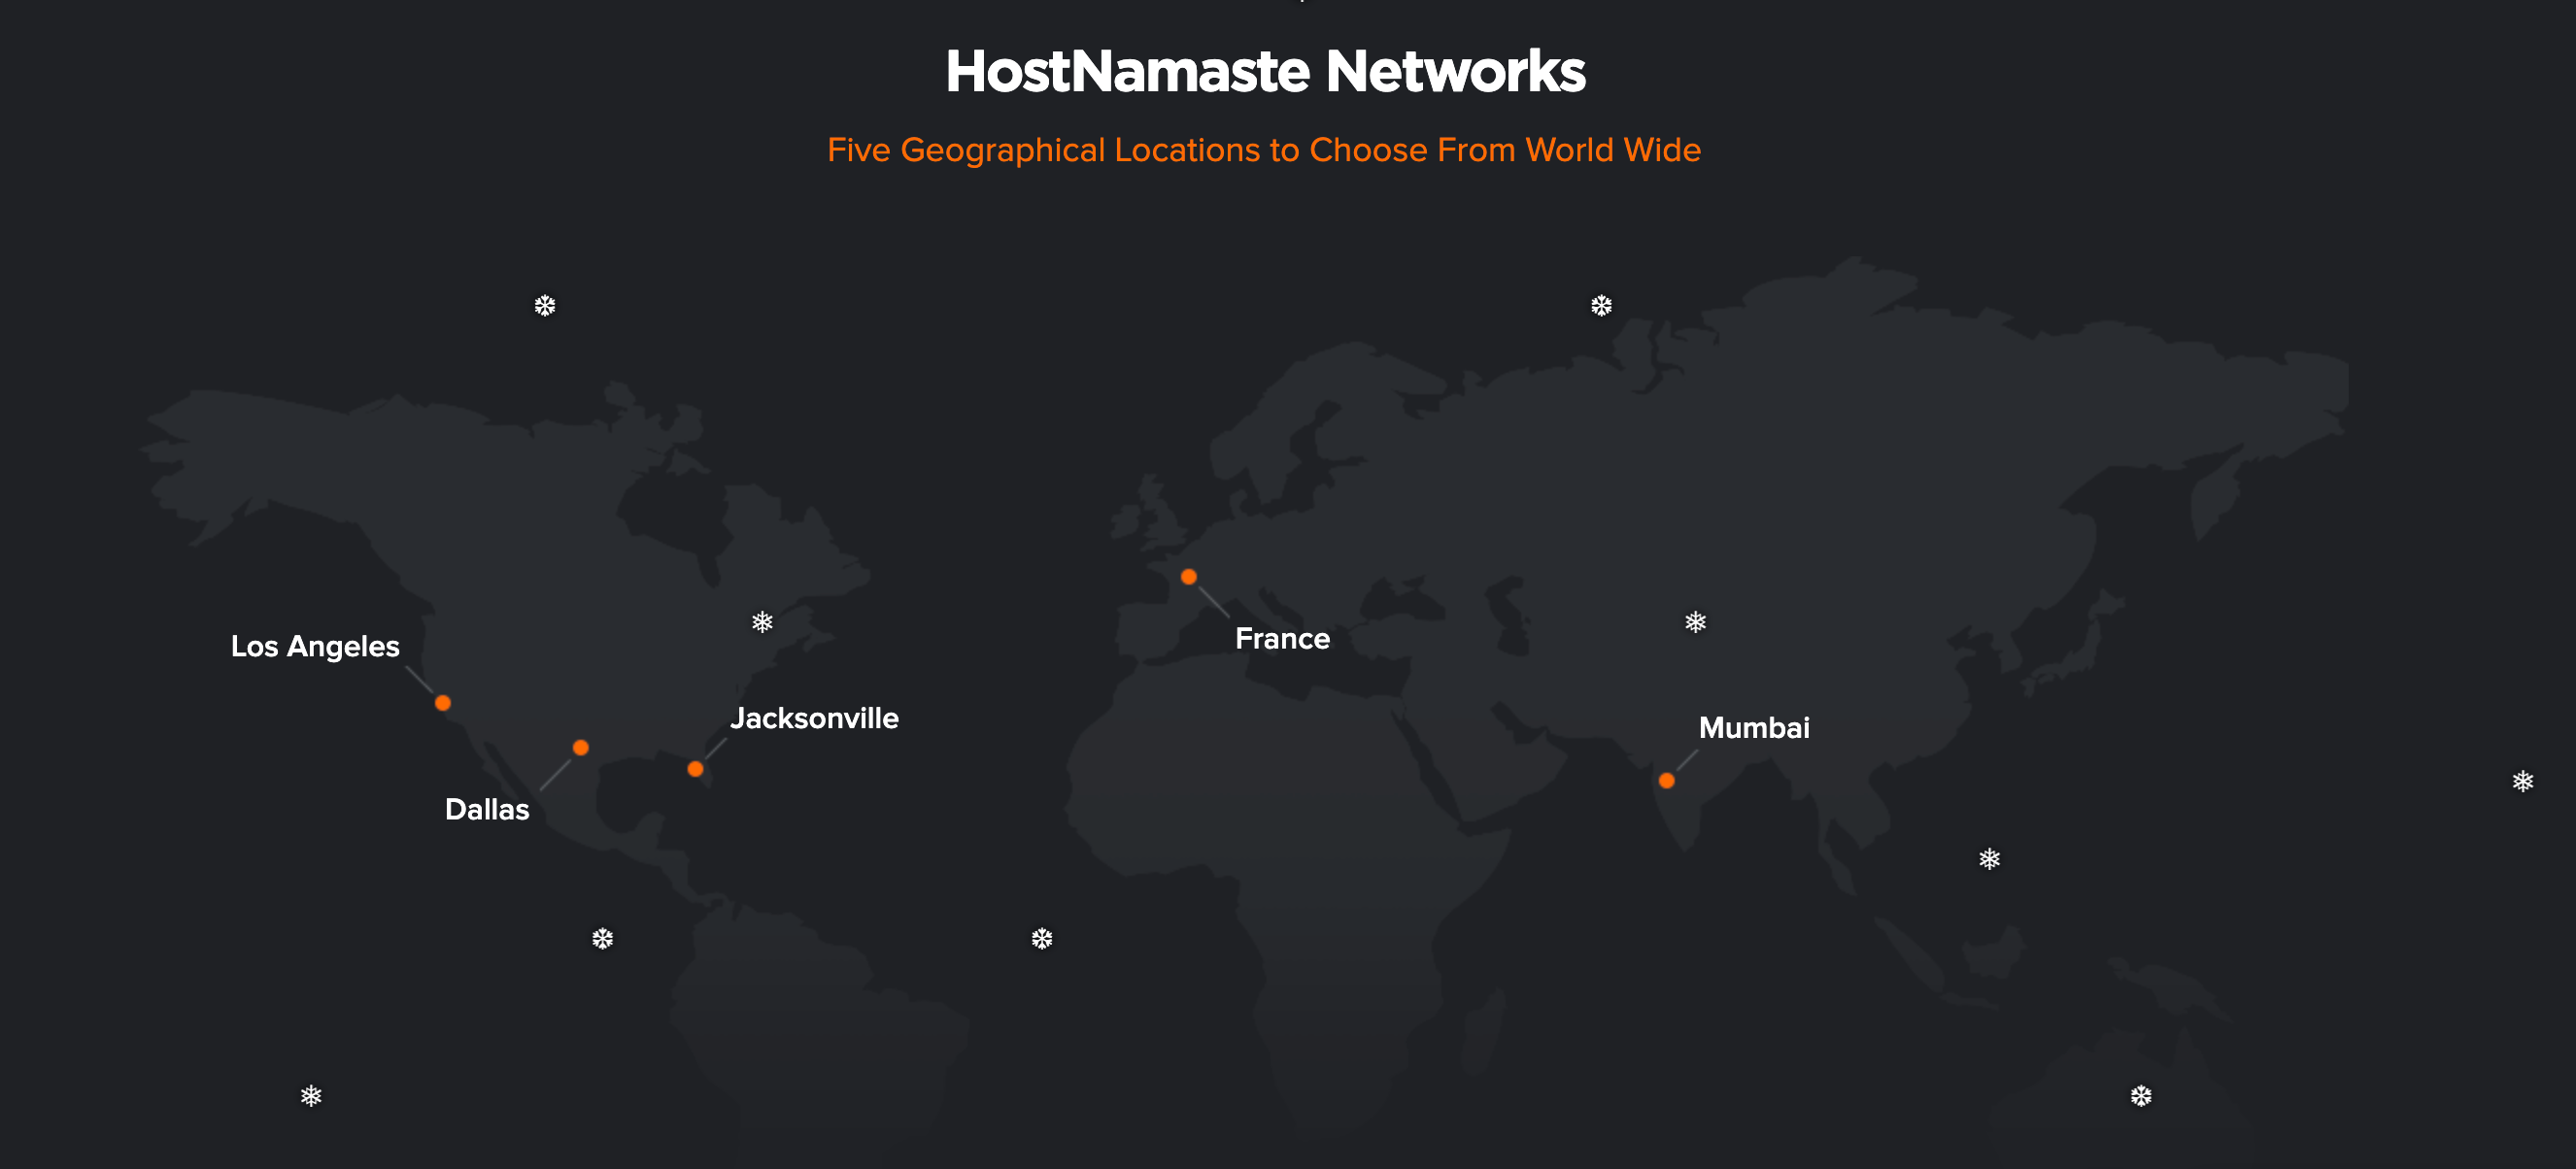 HostNamaste Networks